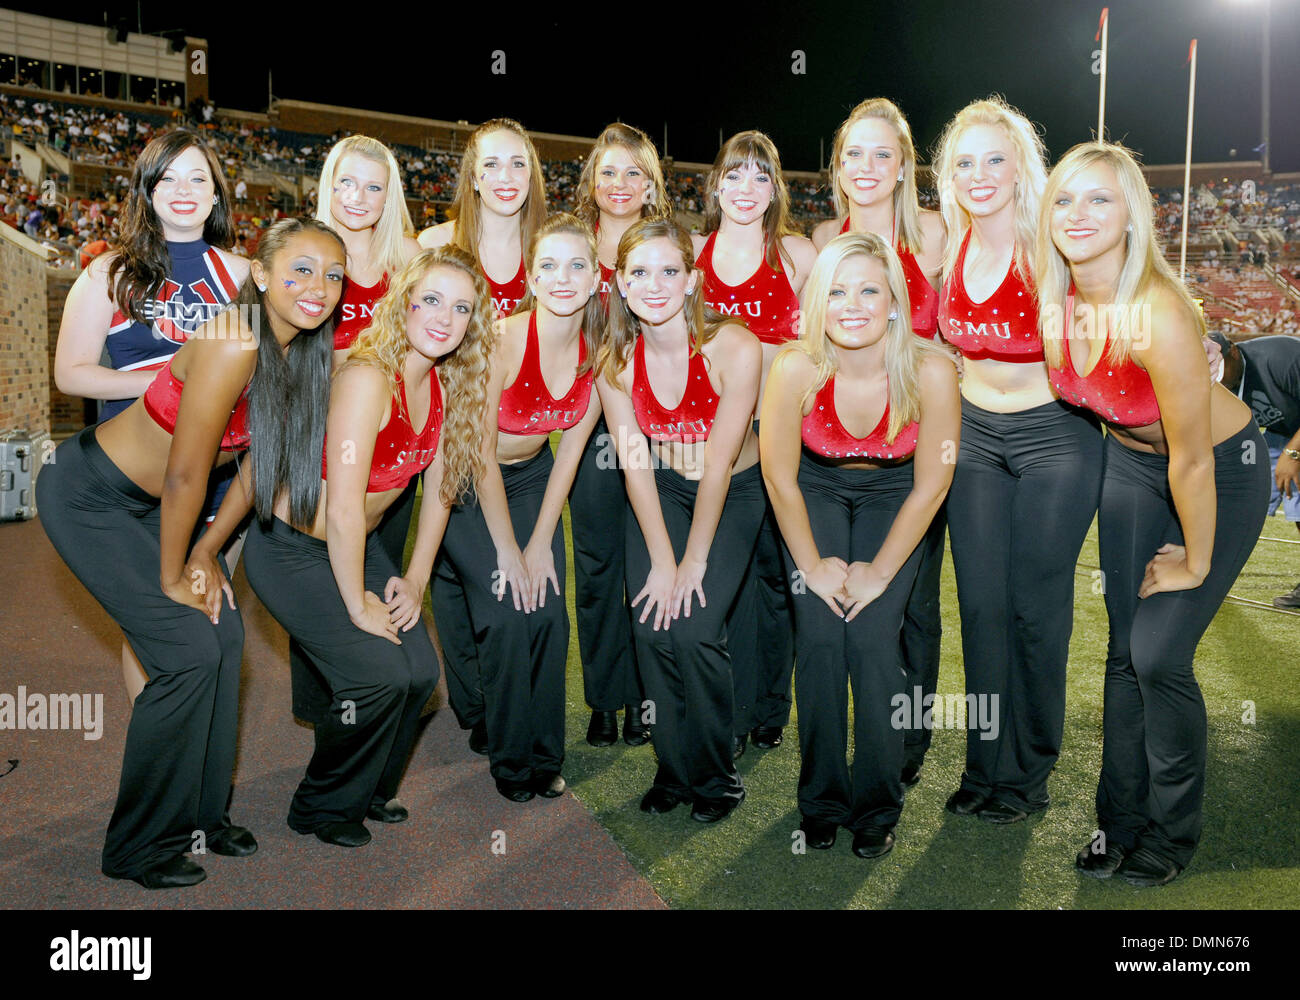 05 SEP 2009:  Stephen F Austin travels to Dallas to face the SMU Ponies in the season kickoff.  With a 4th quarter come back the Ponies win 31-23 over SFA.  SMU's national award winning dance team. (Credit Image: © Southcreek Global/ZUMApress.com) - Stock Image